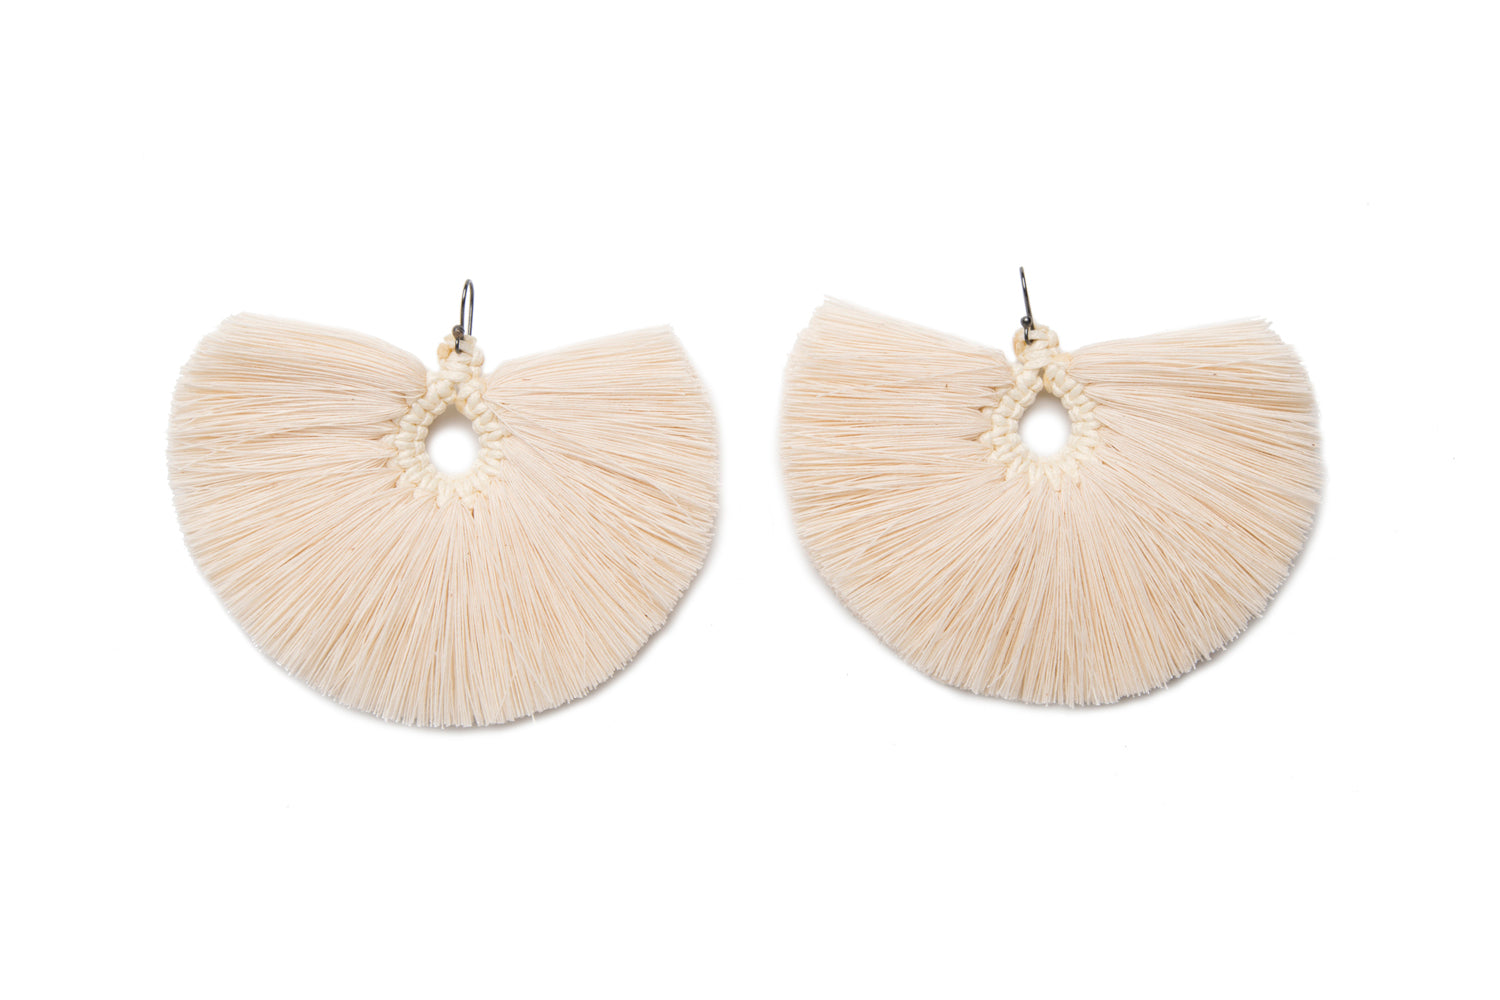 Caralarga Penacho Natural Fiber Fan Earrings IAH